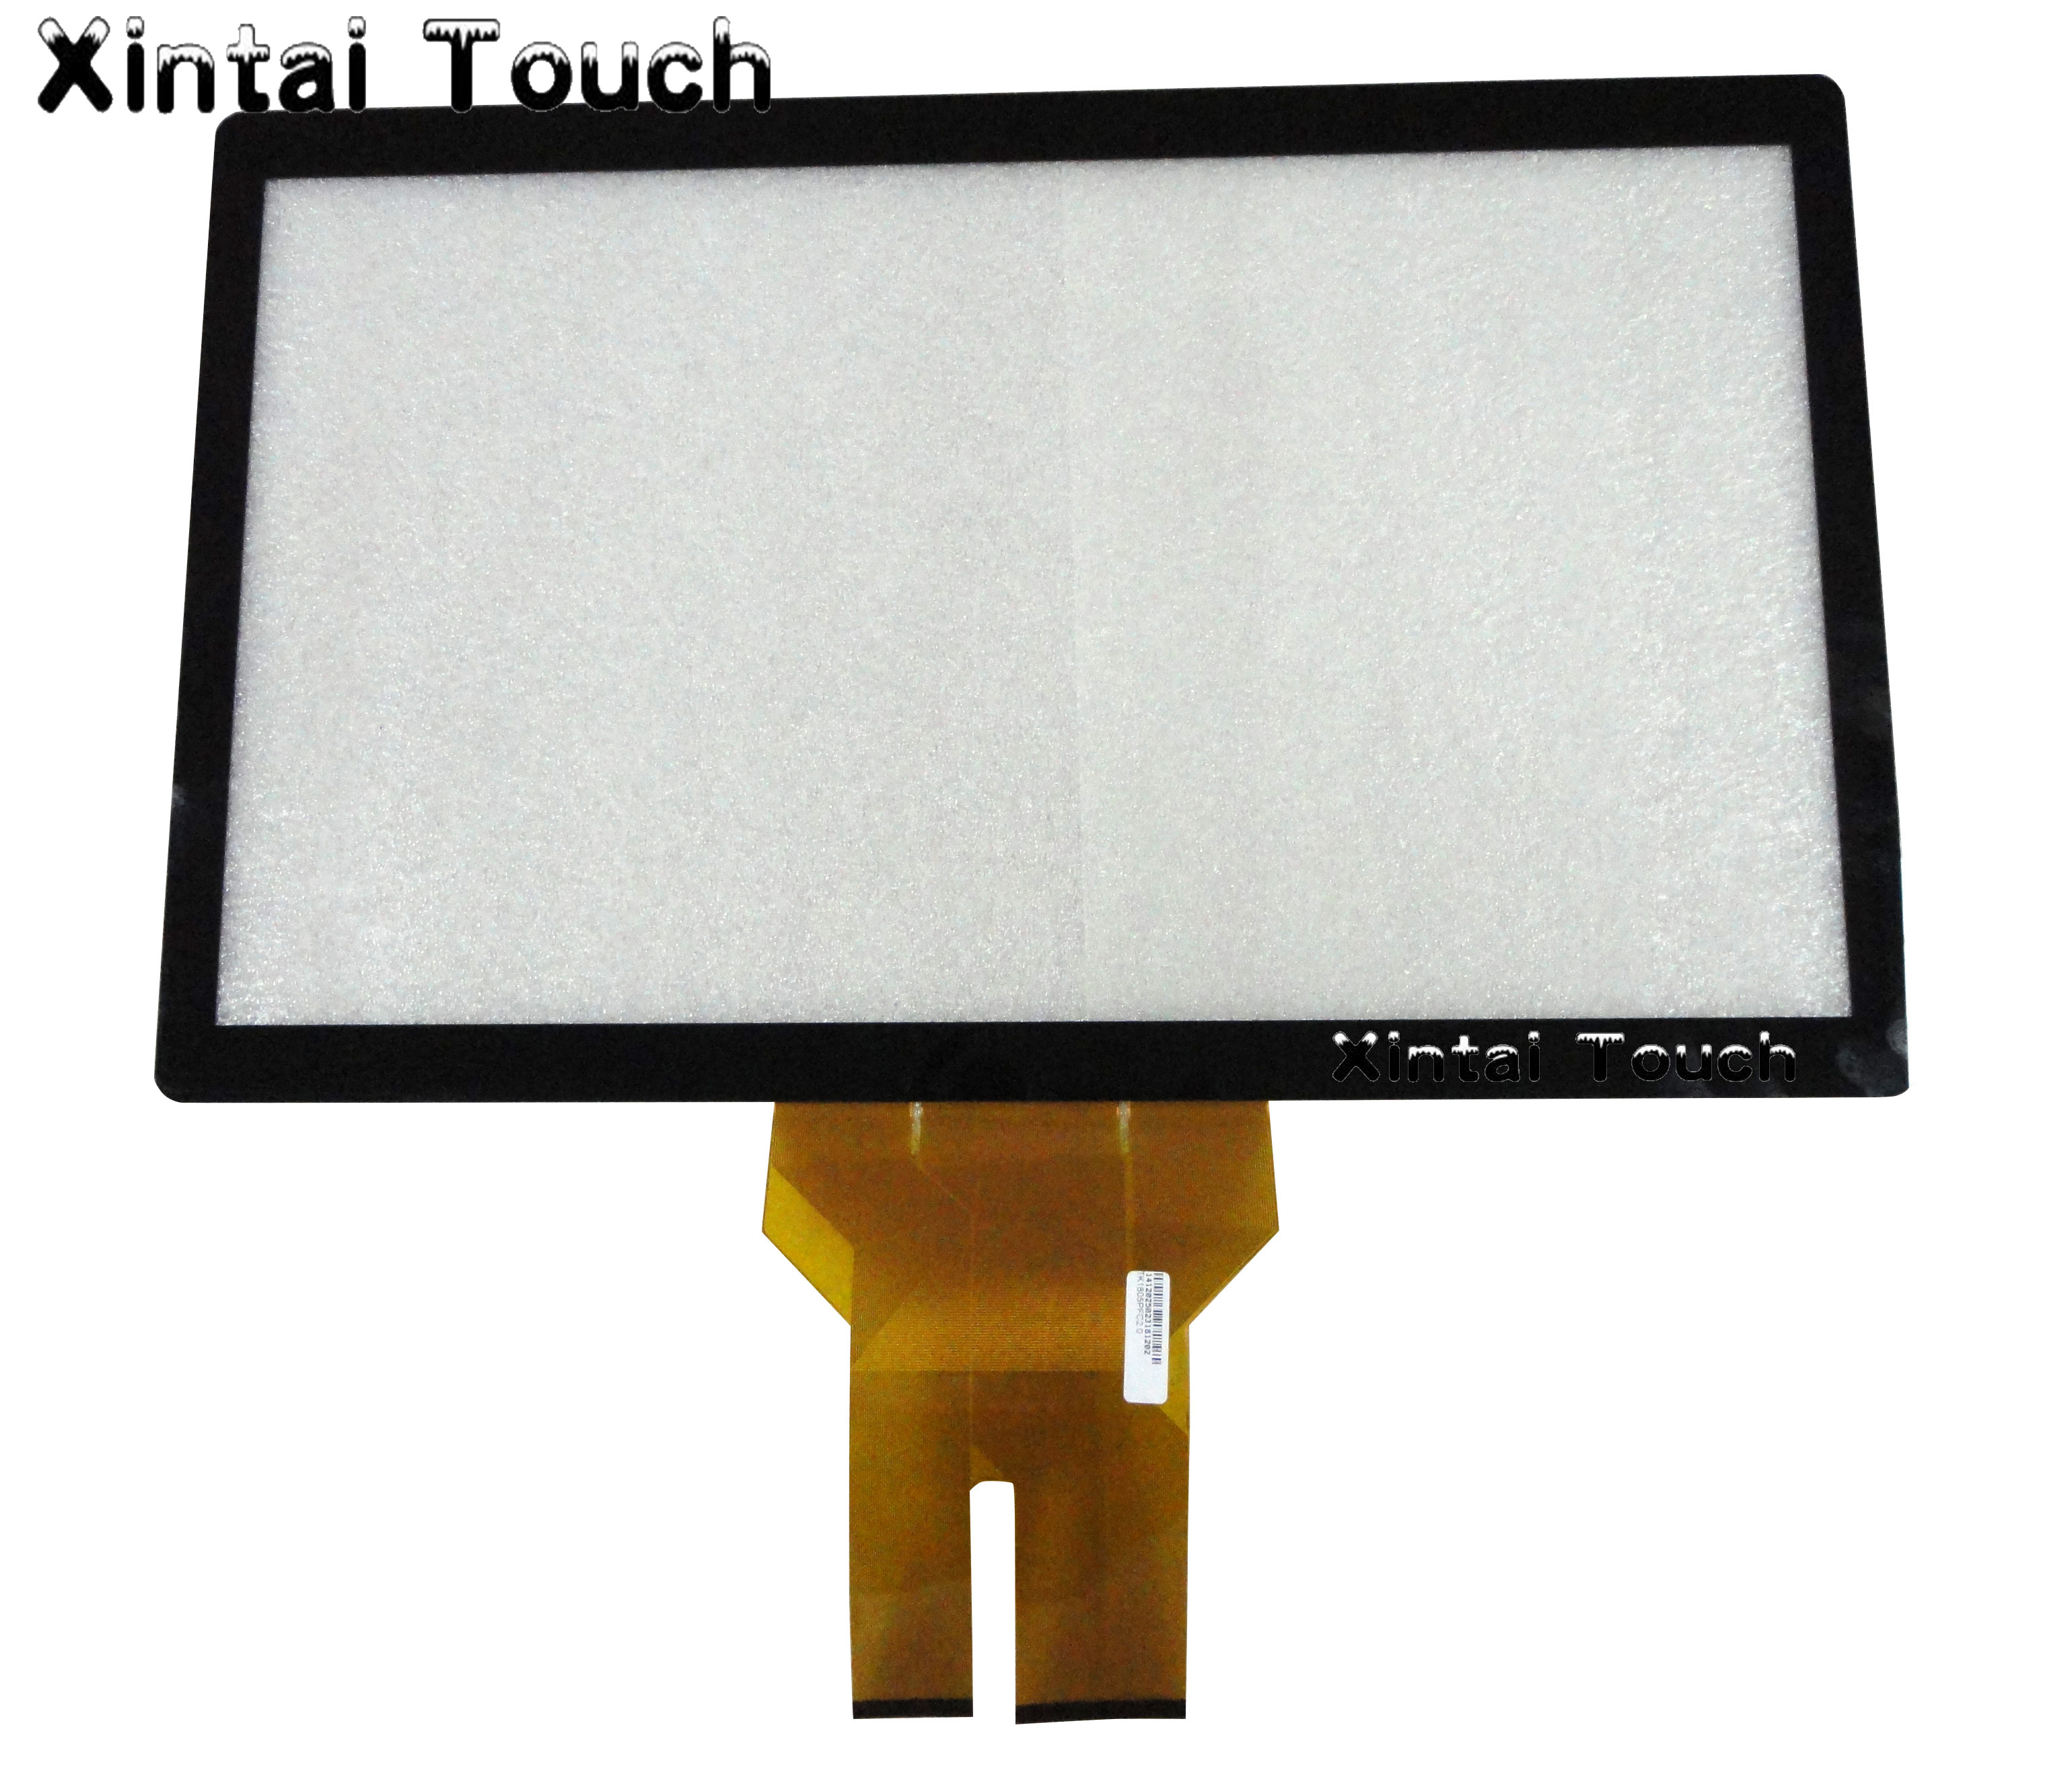 18.5 inch cheap Multi capacitive touch screen with glass/ capacitive touch screen overlay panel kit for touch table, kiosk etc free shipping 20 multi ir touch frame 2 points infrared touch screen overlay kit for kiosk